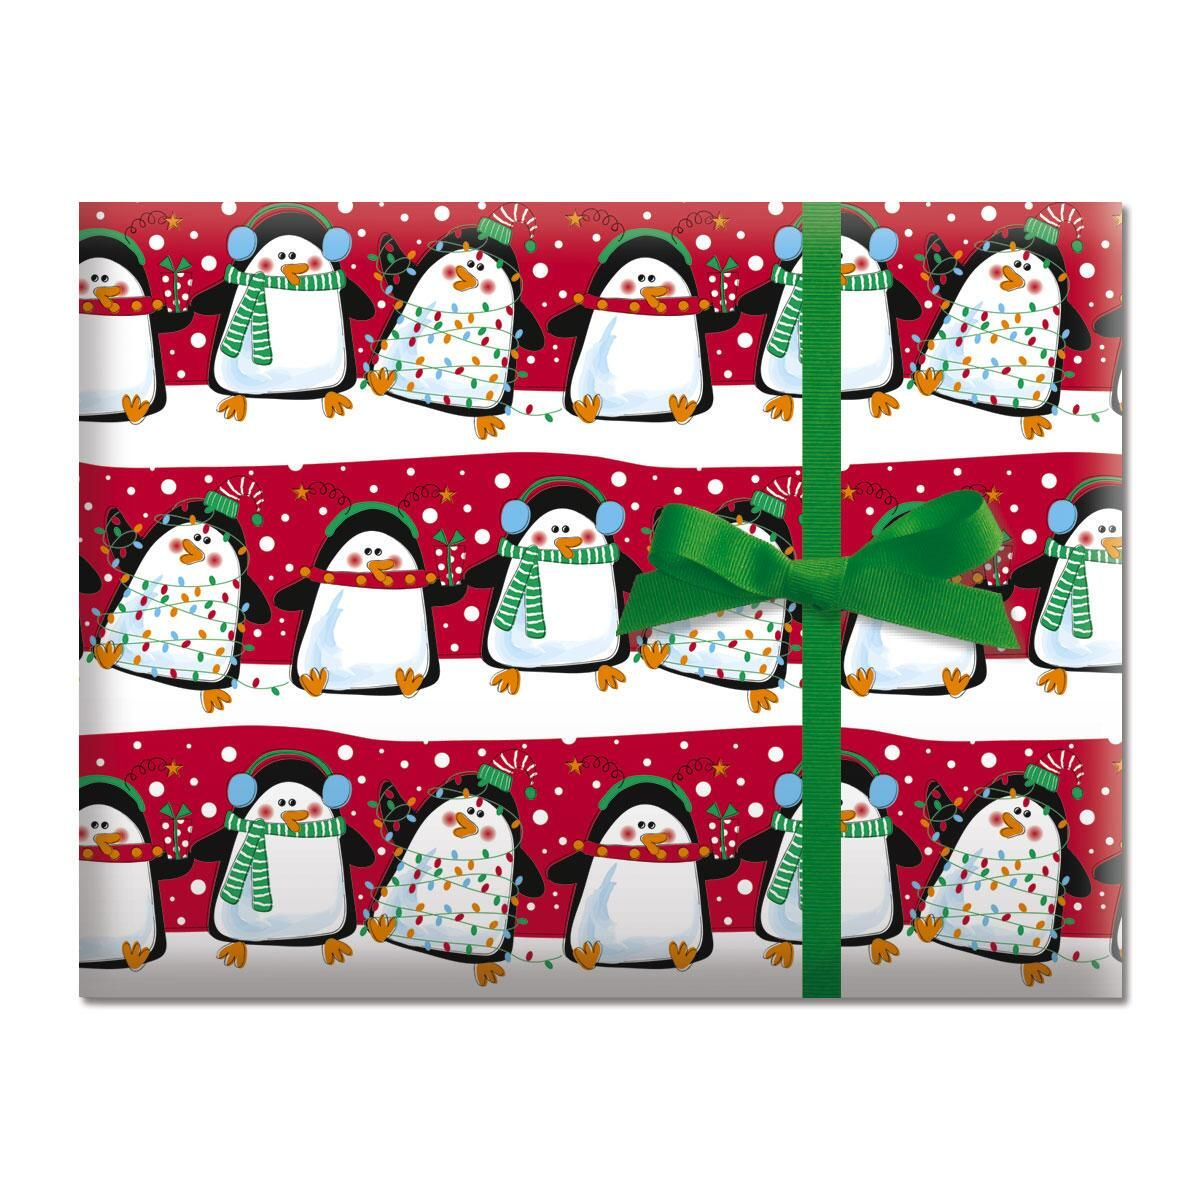 Festive Penguins Jumbo Rolled Gift Wrap